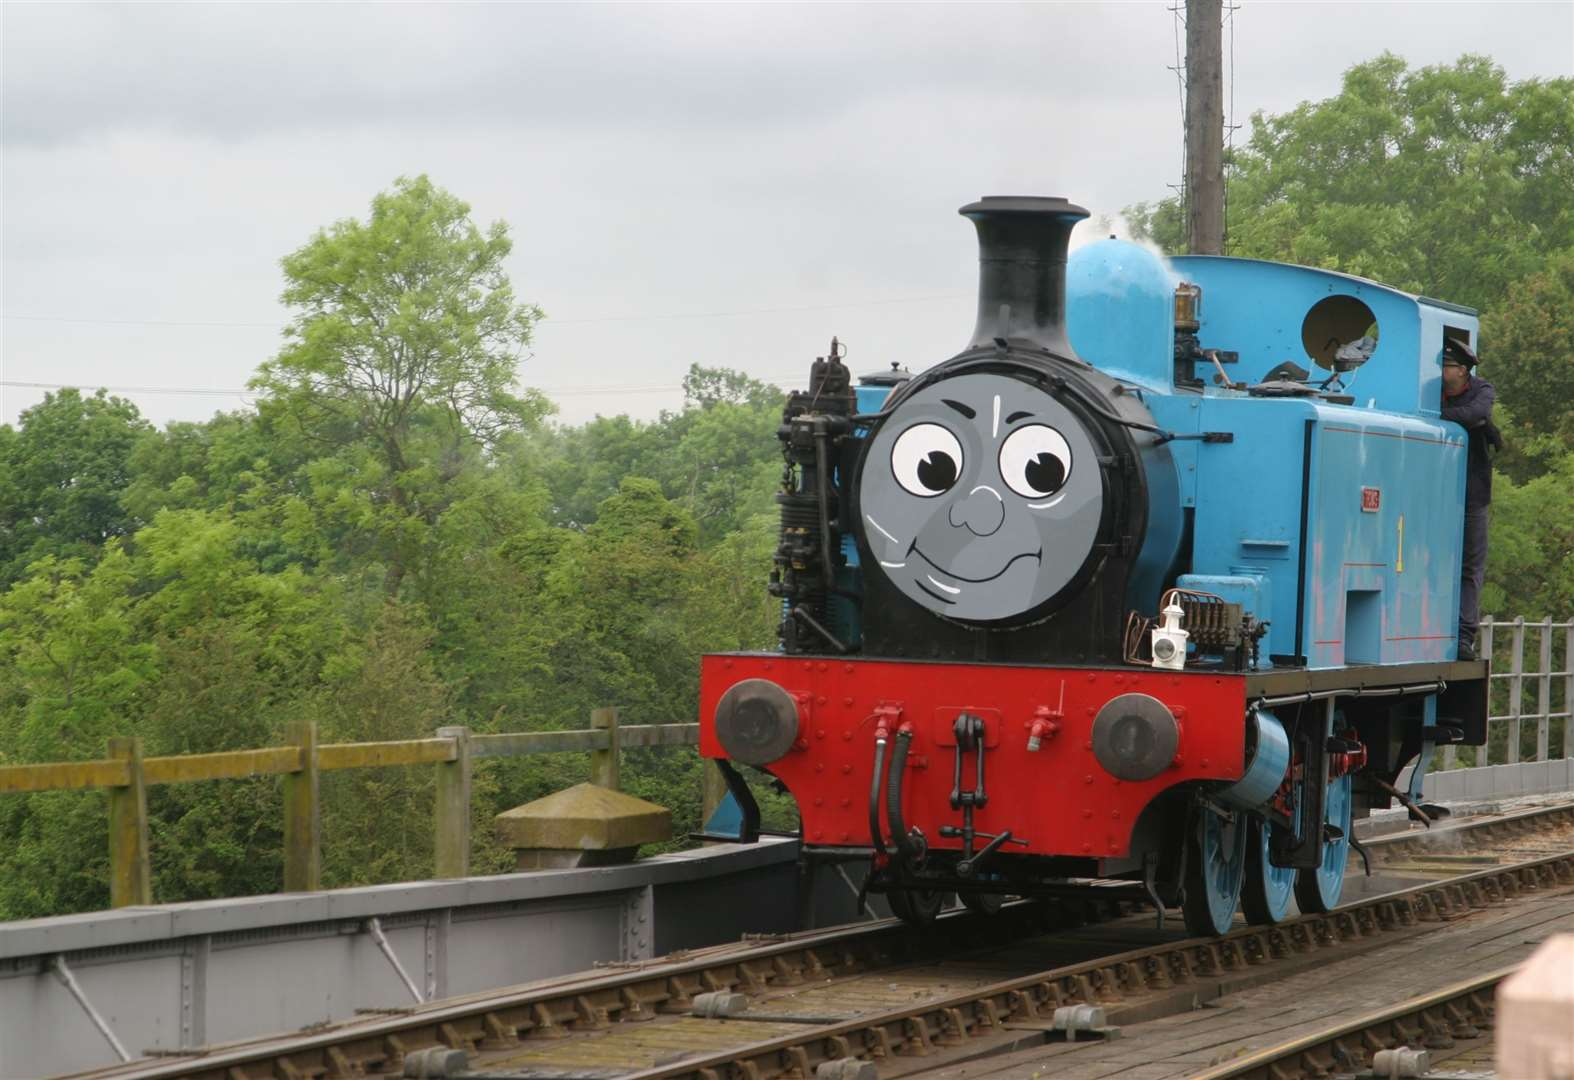 Thomas in steam at Nene Valley Railway this weekend